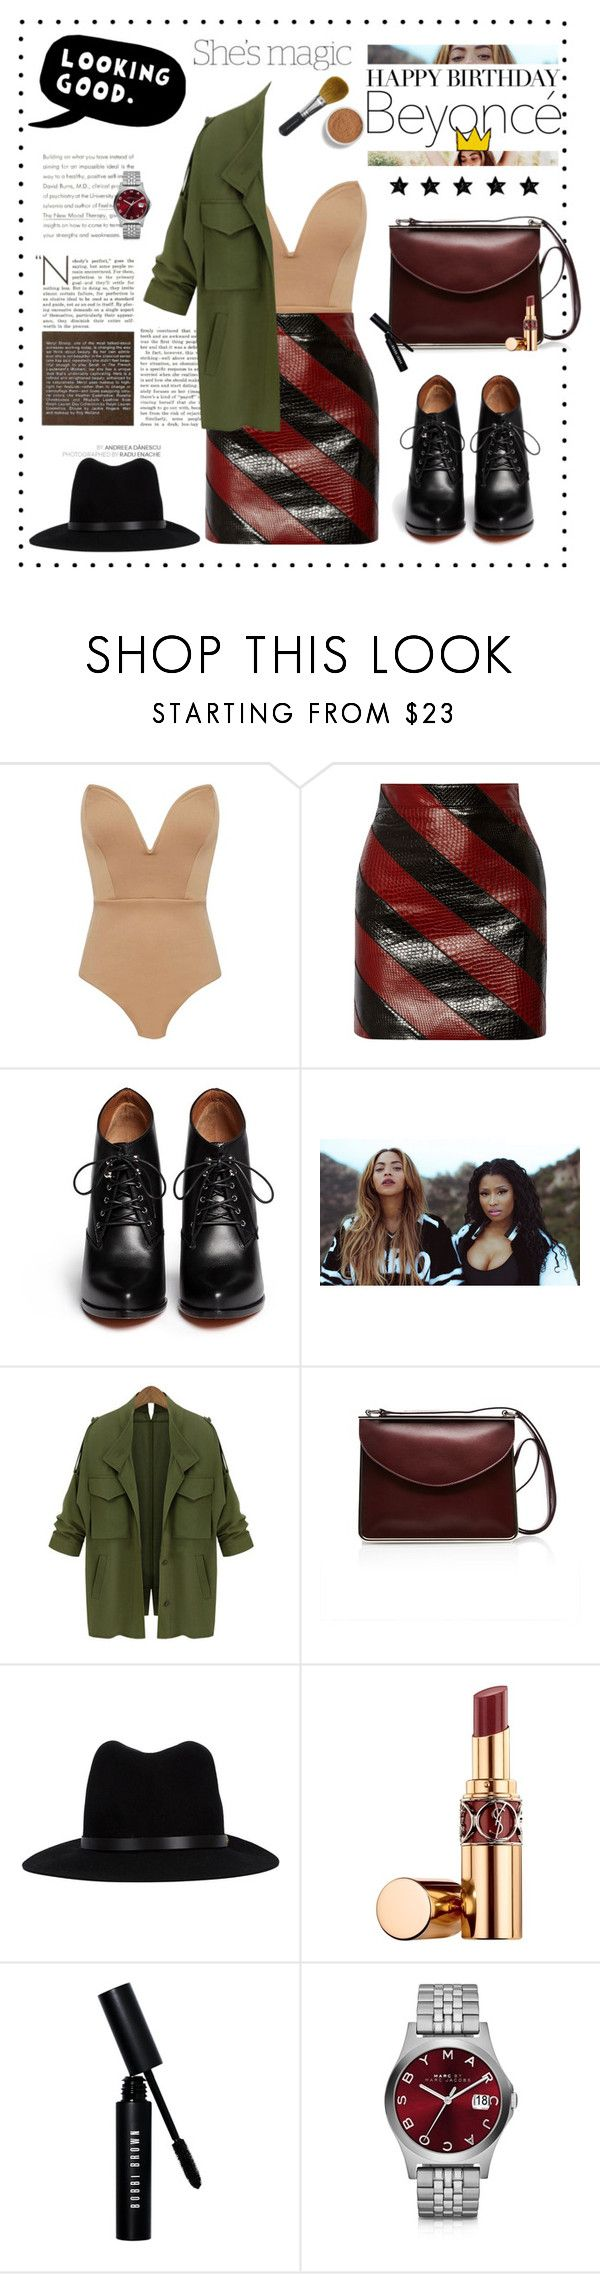 """Happy Birthday, Beyoncé!"" by vladoslav ❤ liked on Polyvore featuring Yves Saint Laurent, Givenchy, Nicki Minaj, Carven, rag & bone, ESPRIT, CC, Nicole, Bobbi Brown Cosmetics and Marc by Marc Jacobs"